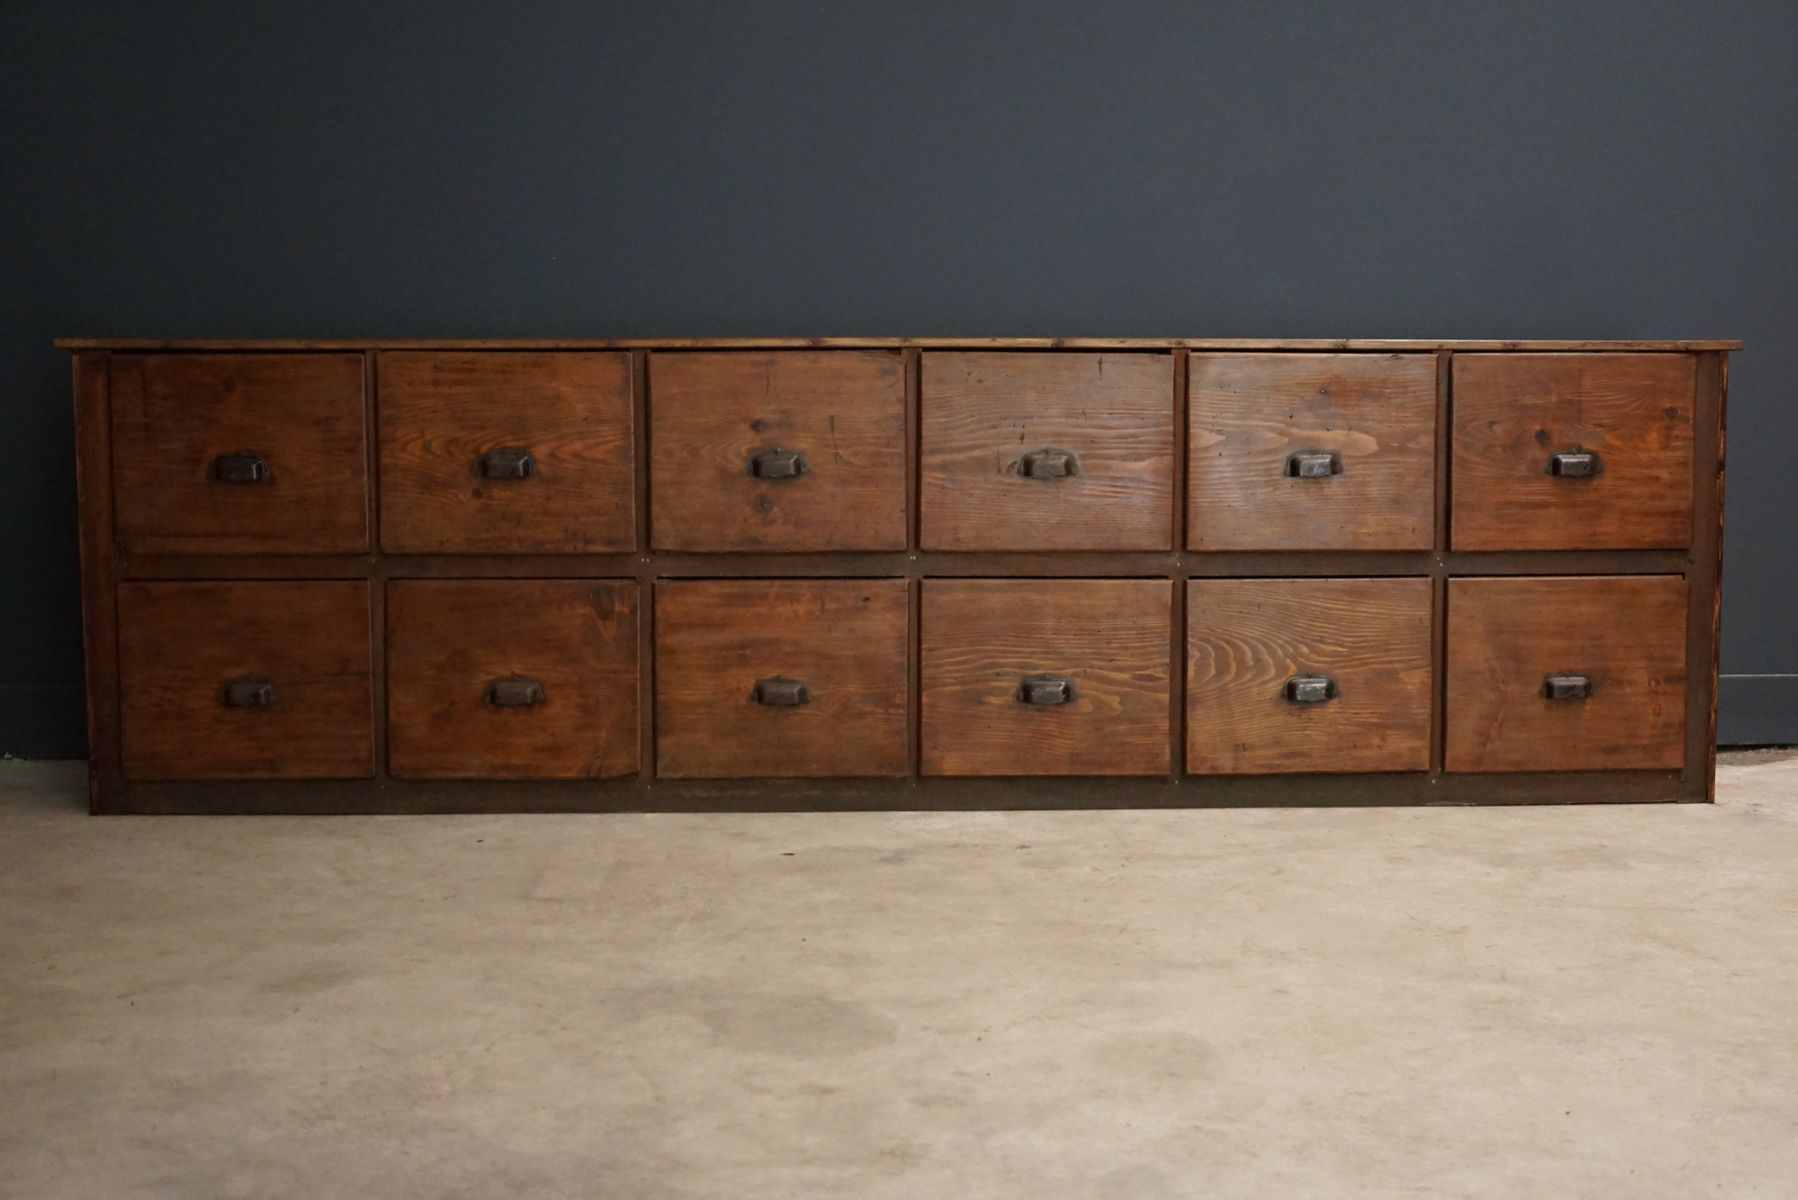 Large French Pine Apothecary Cabinet S For Sale At Pamono - Apothecary cabinet